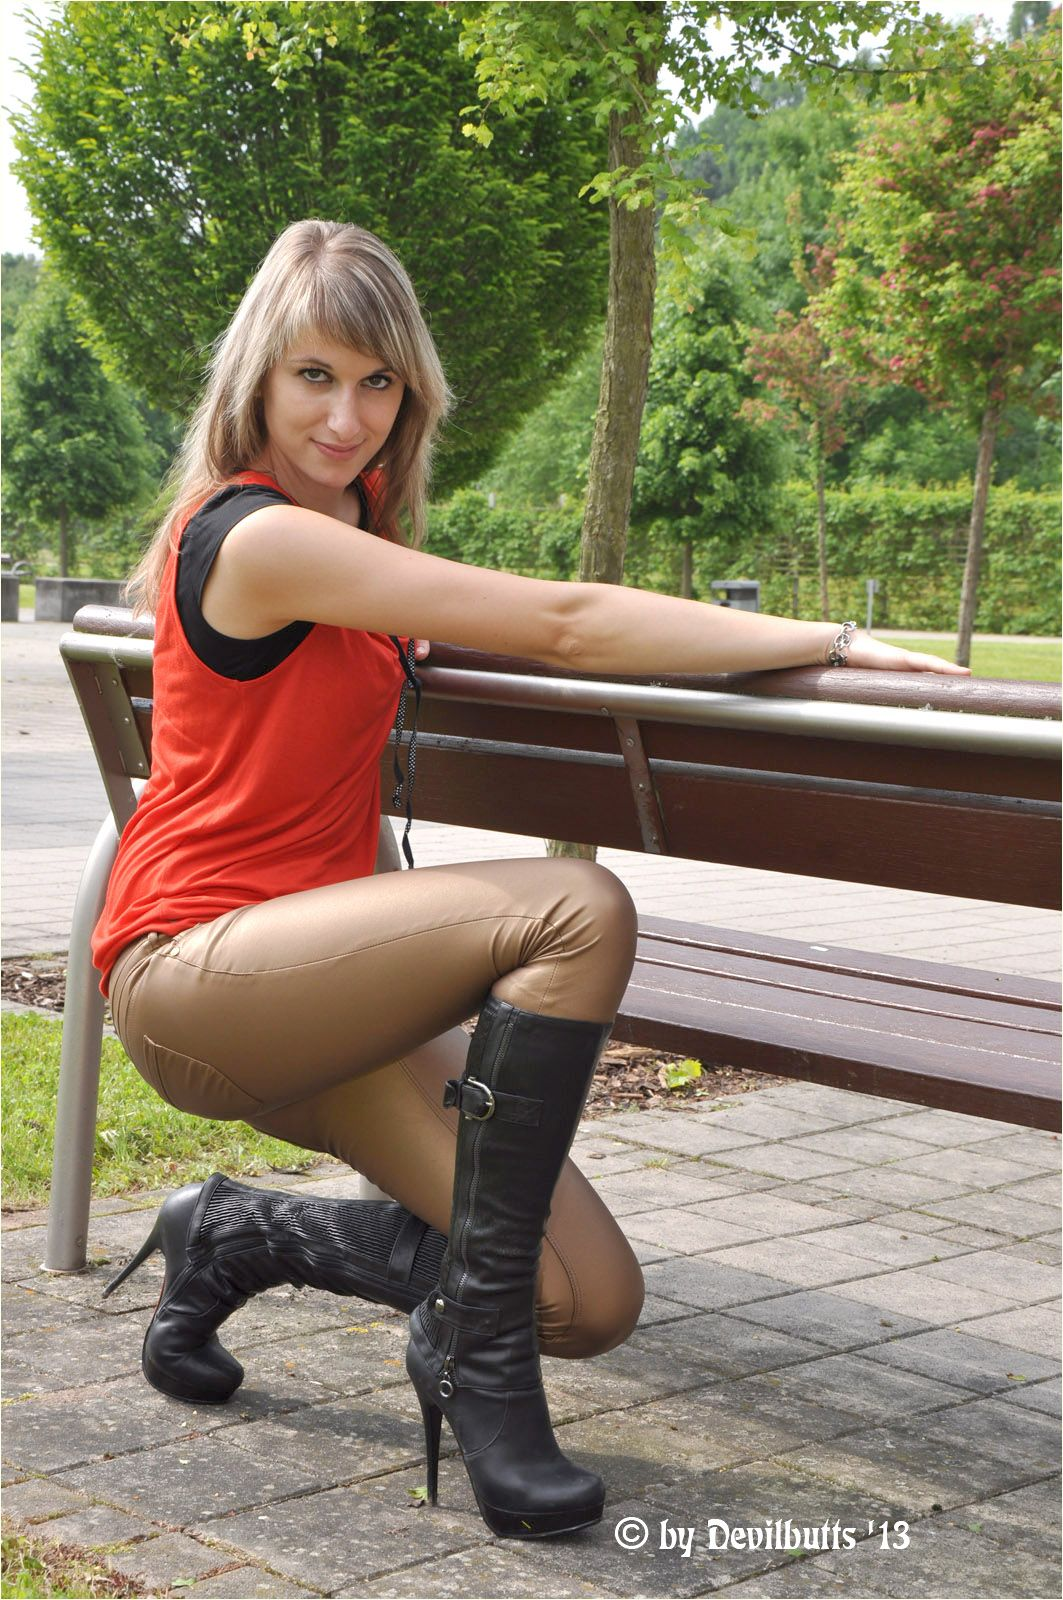 Pin by Meister Marco on Devilbutts   Pinterest   Boots